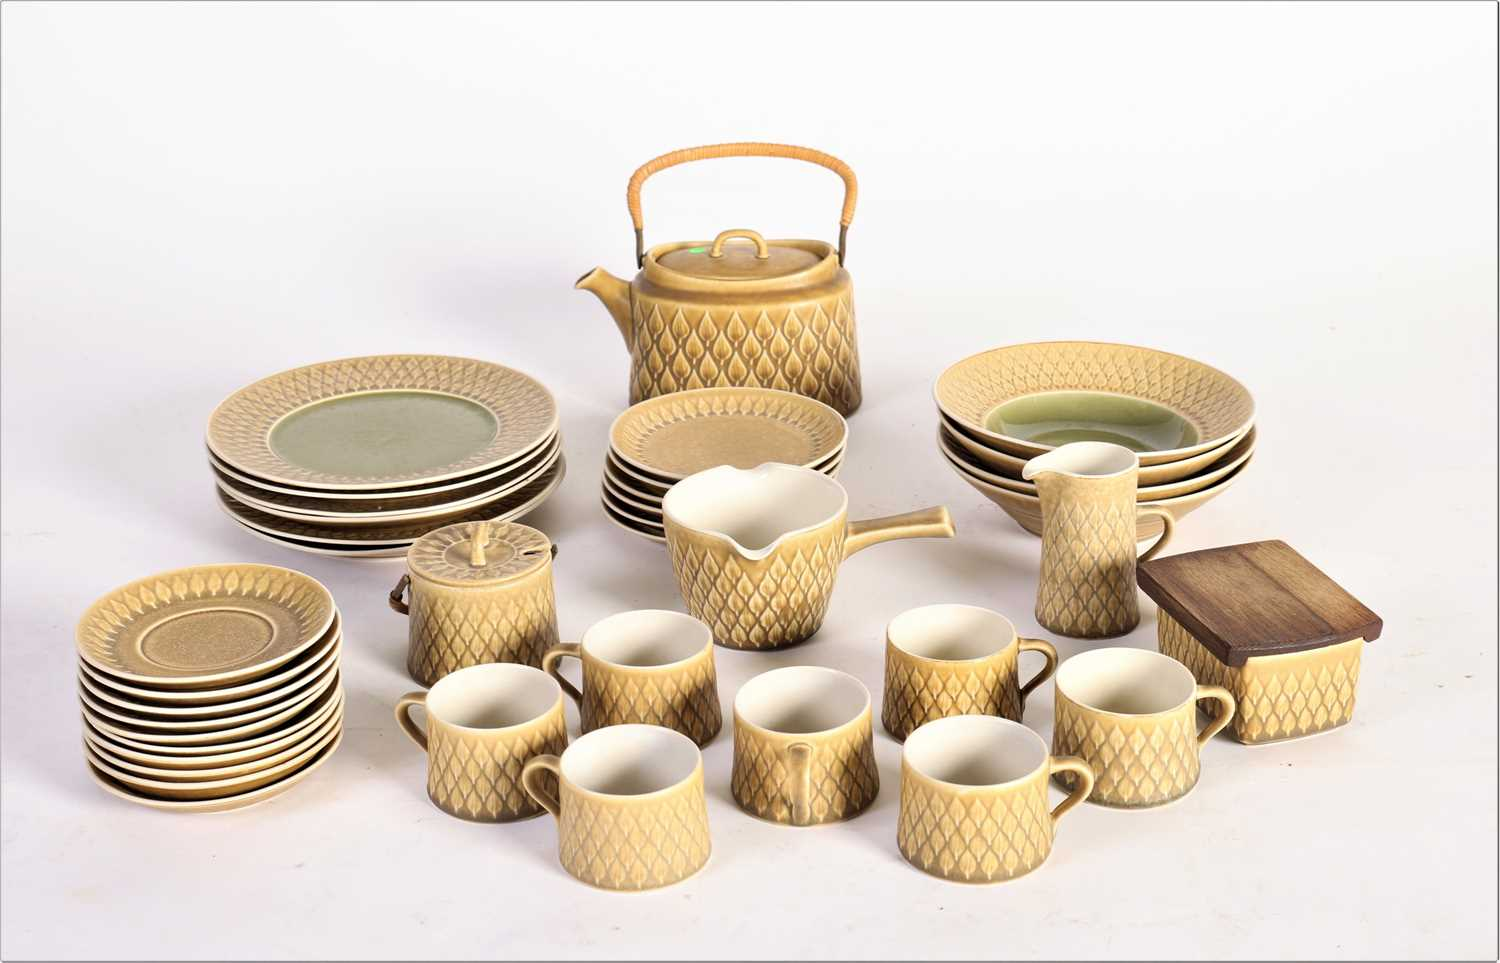 Lot 721 - Jens Quistgaard Bing and Grondahl stoneware service